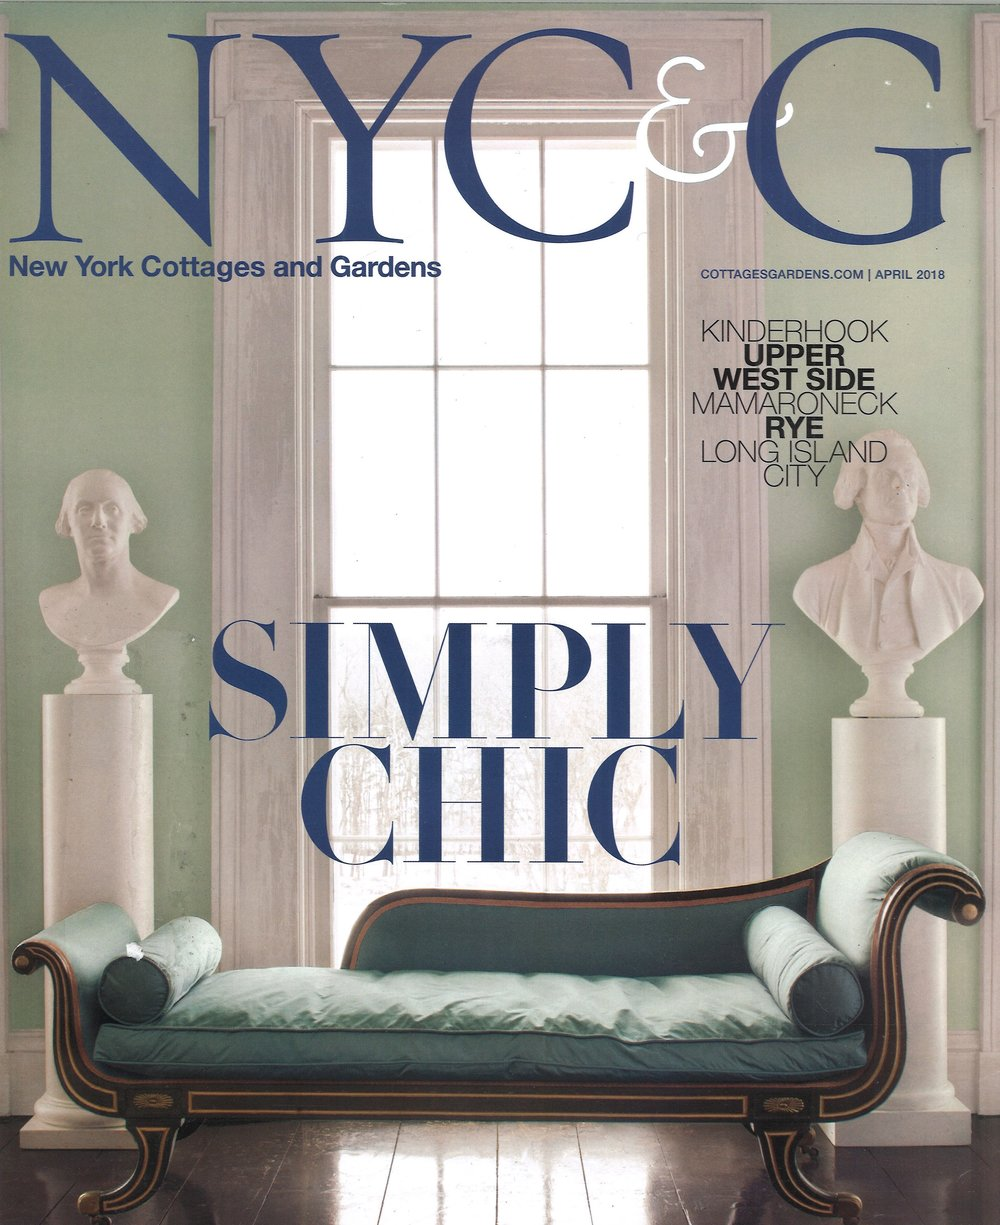 NYCG april18 cover.jpg